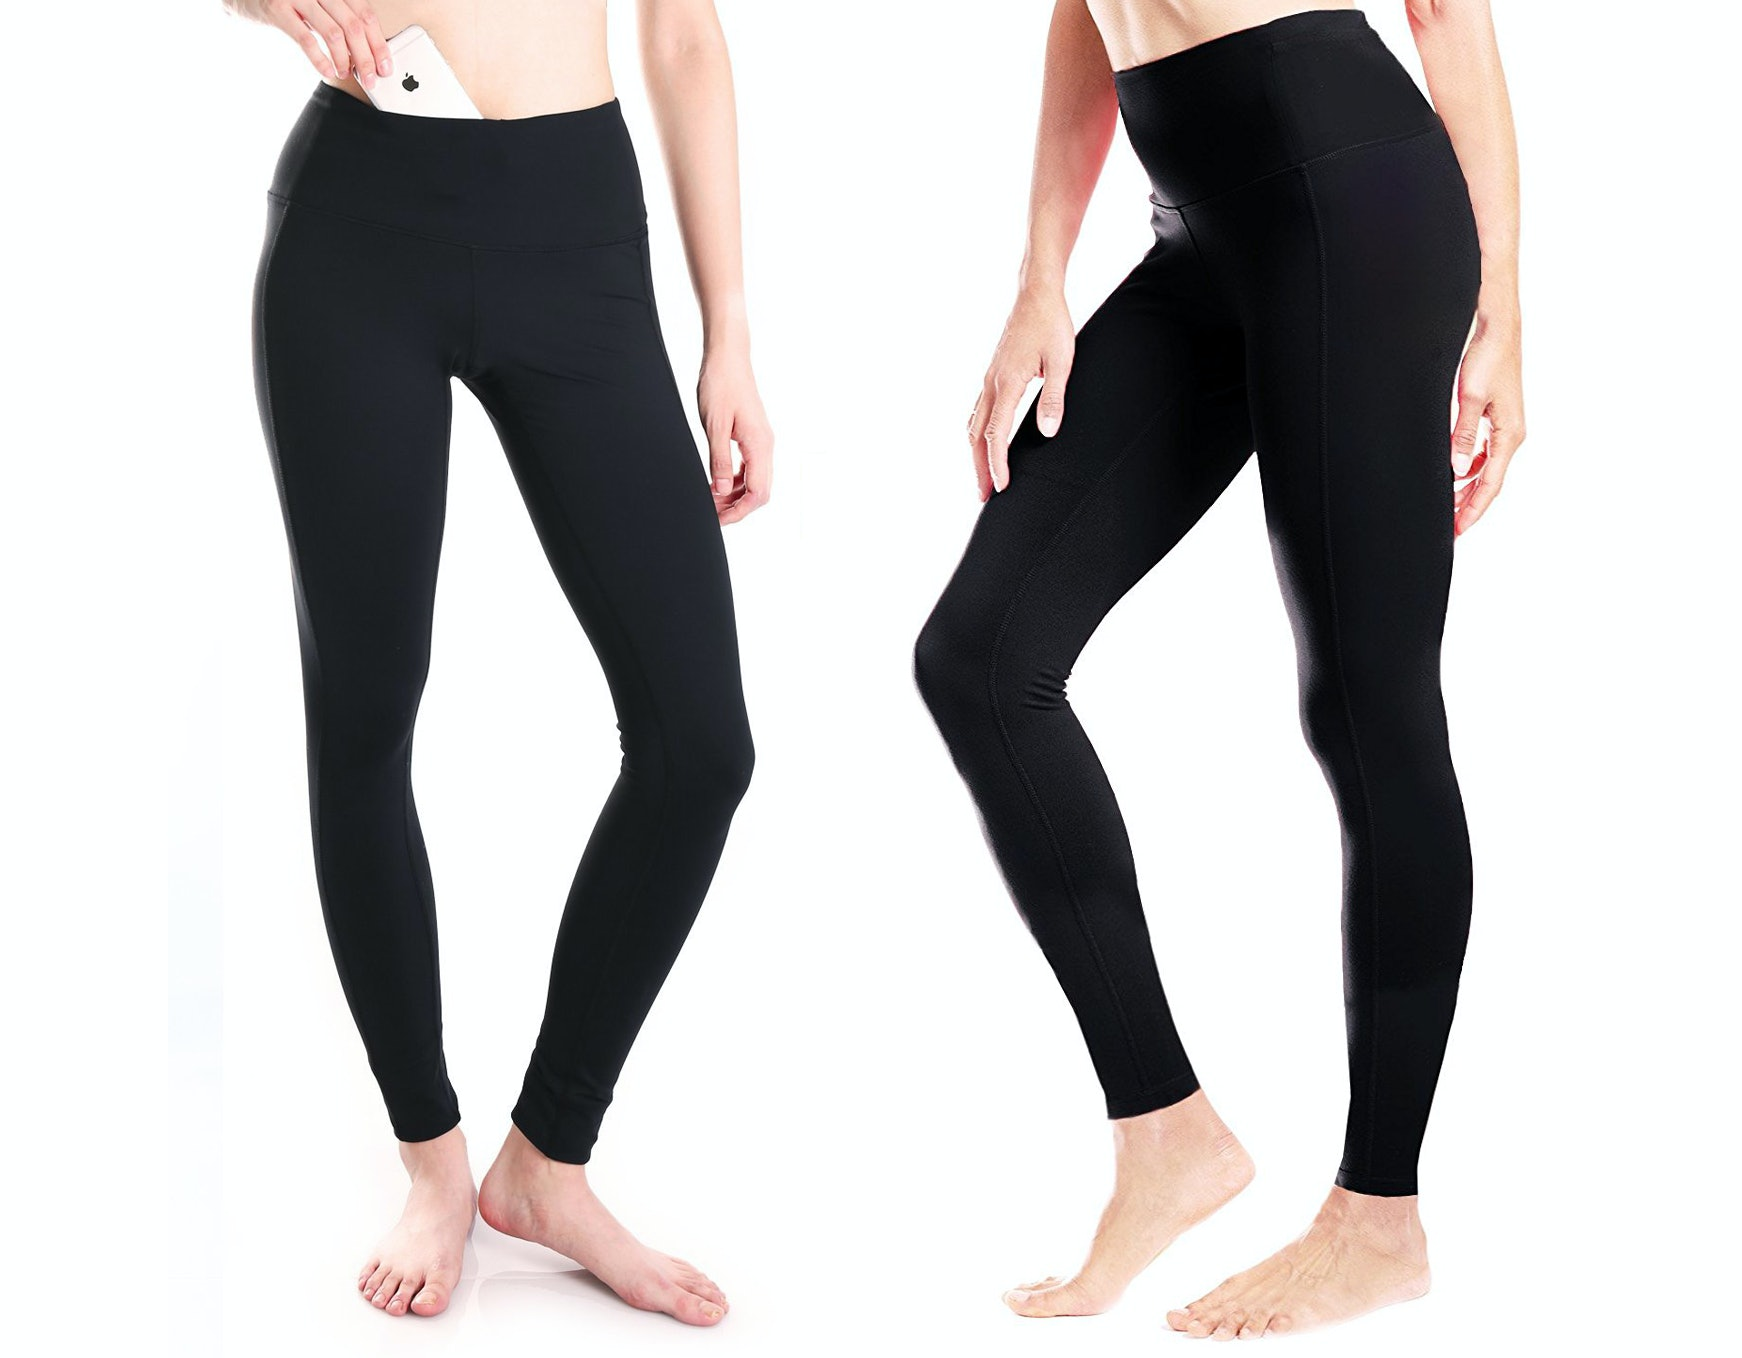 0abda228c0b4d3 The 6 Best Leggings With A Smartphone Pocket